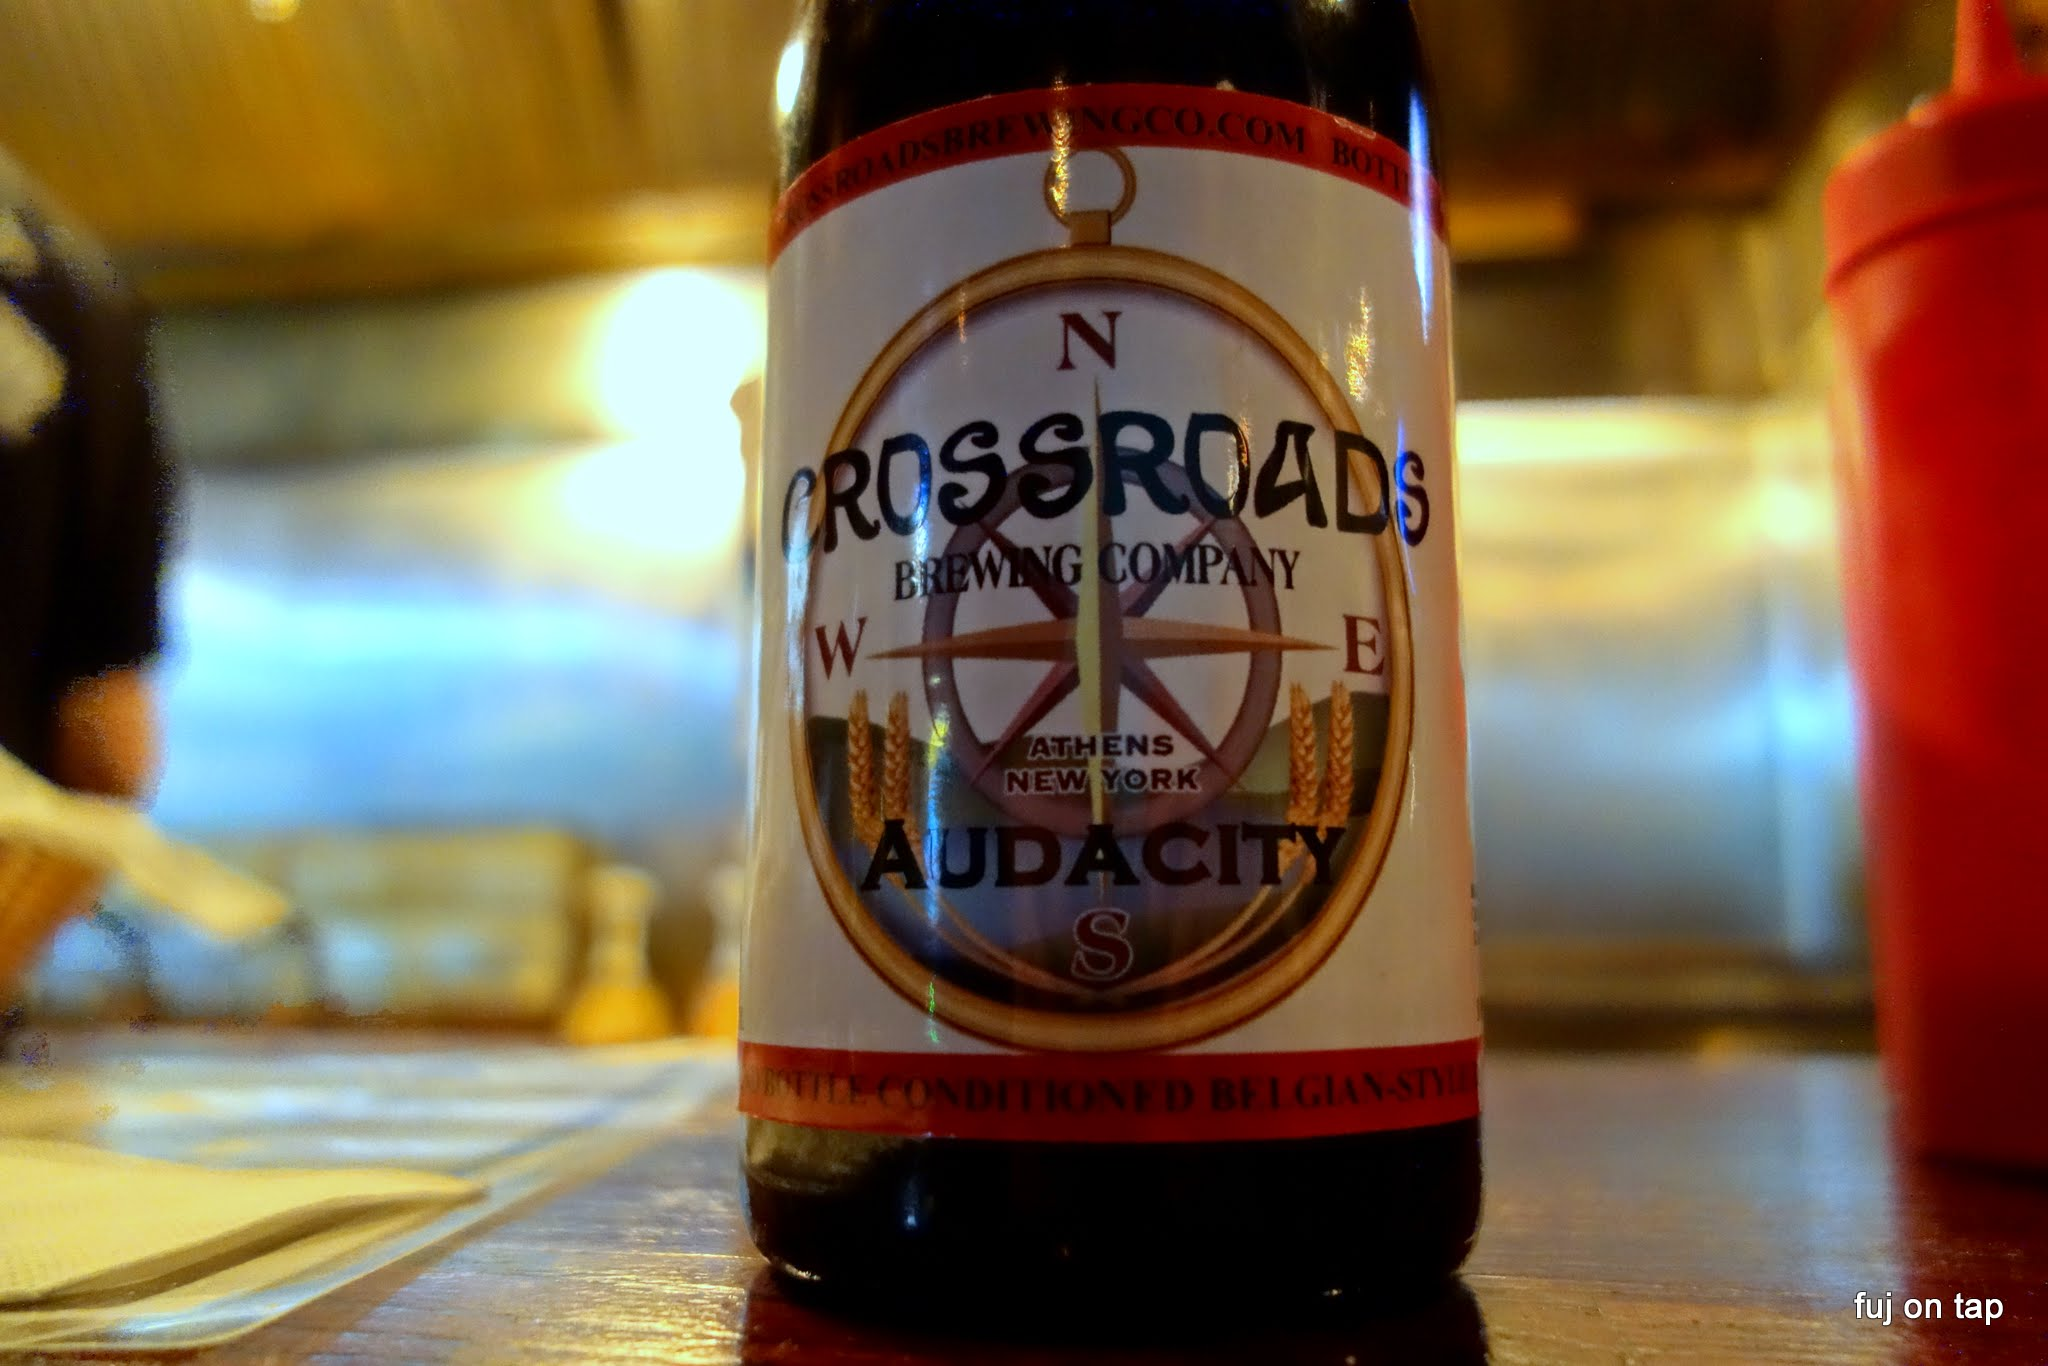 Crossroads Brewing Audacity